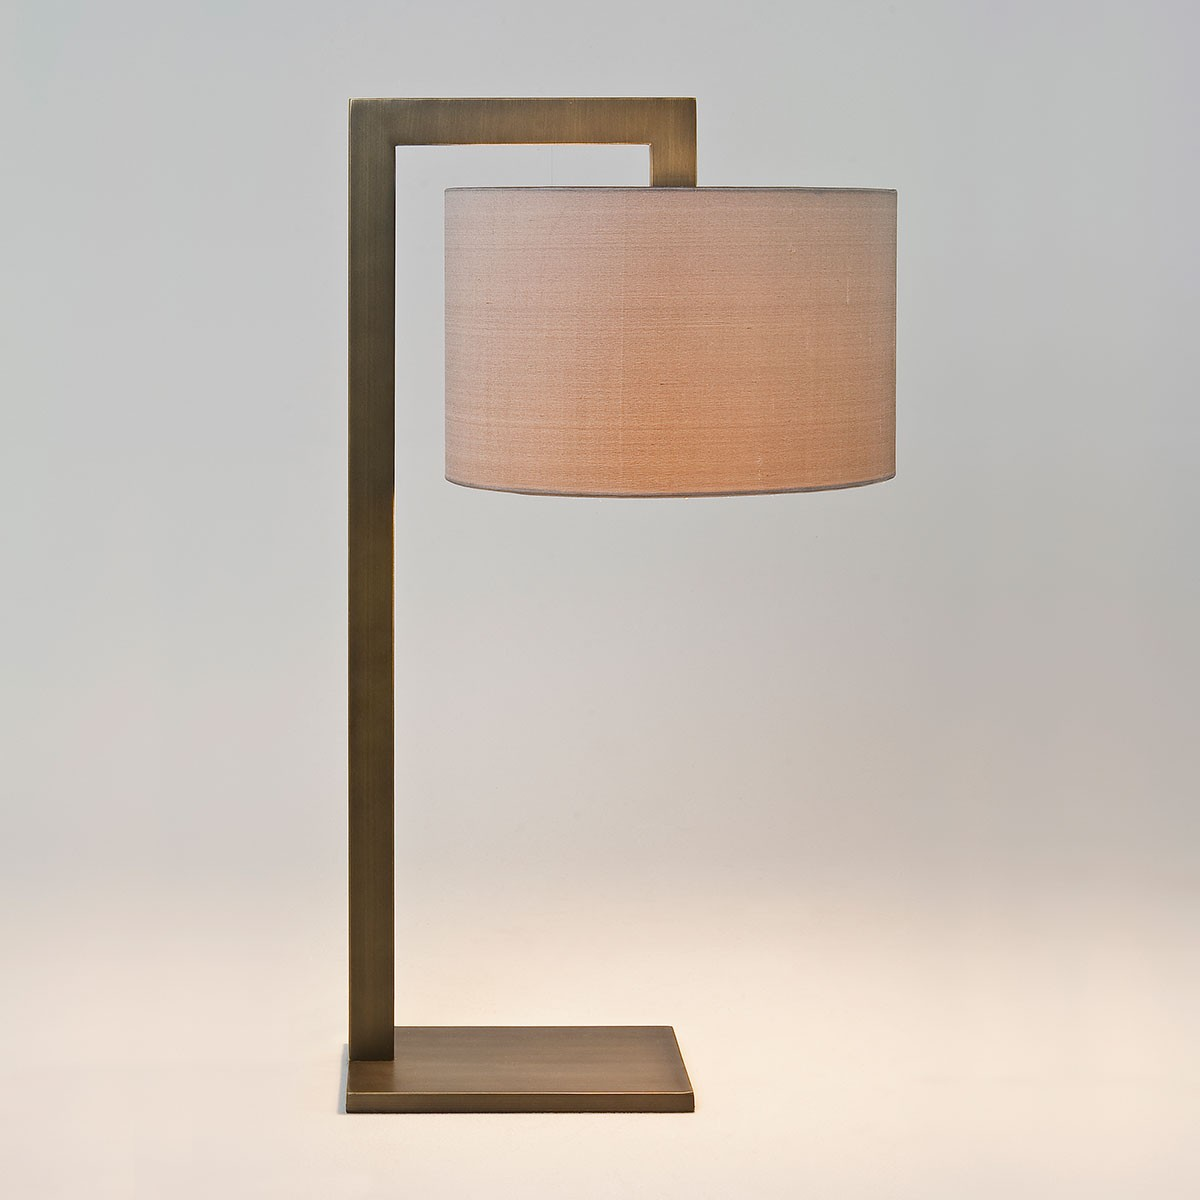 Astro Ravello Table Bronze Table Lamp at UK Electrical Supplies.